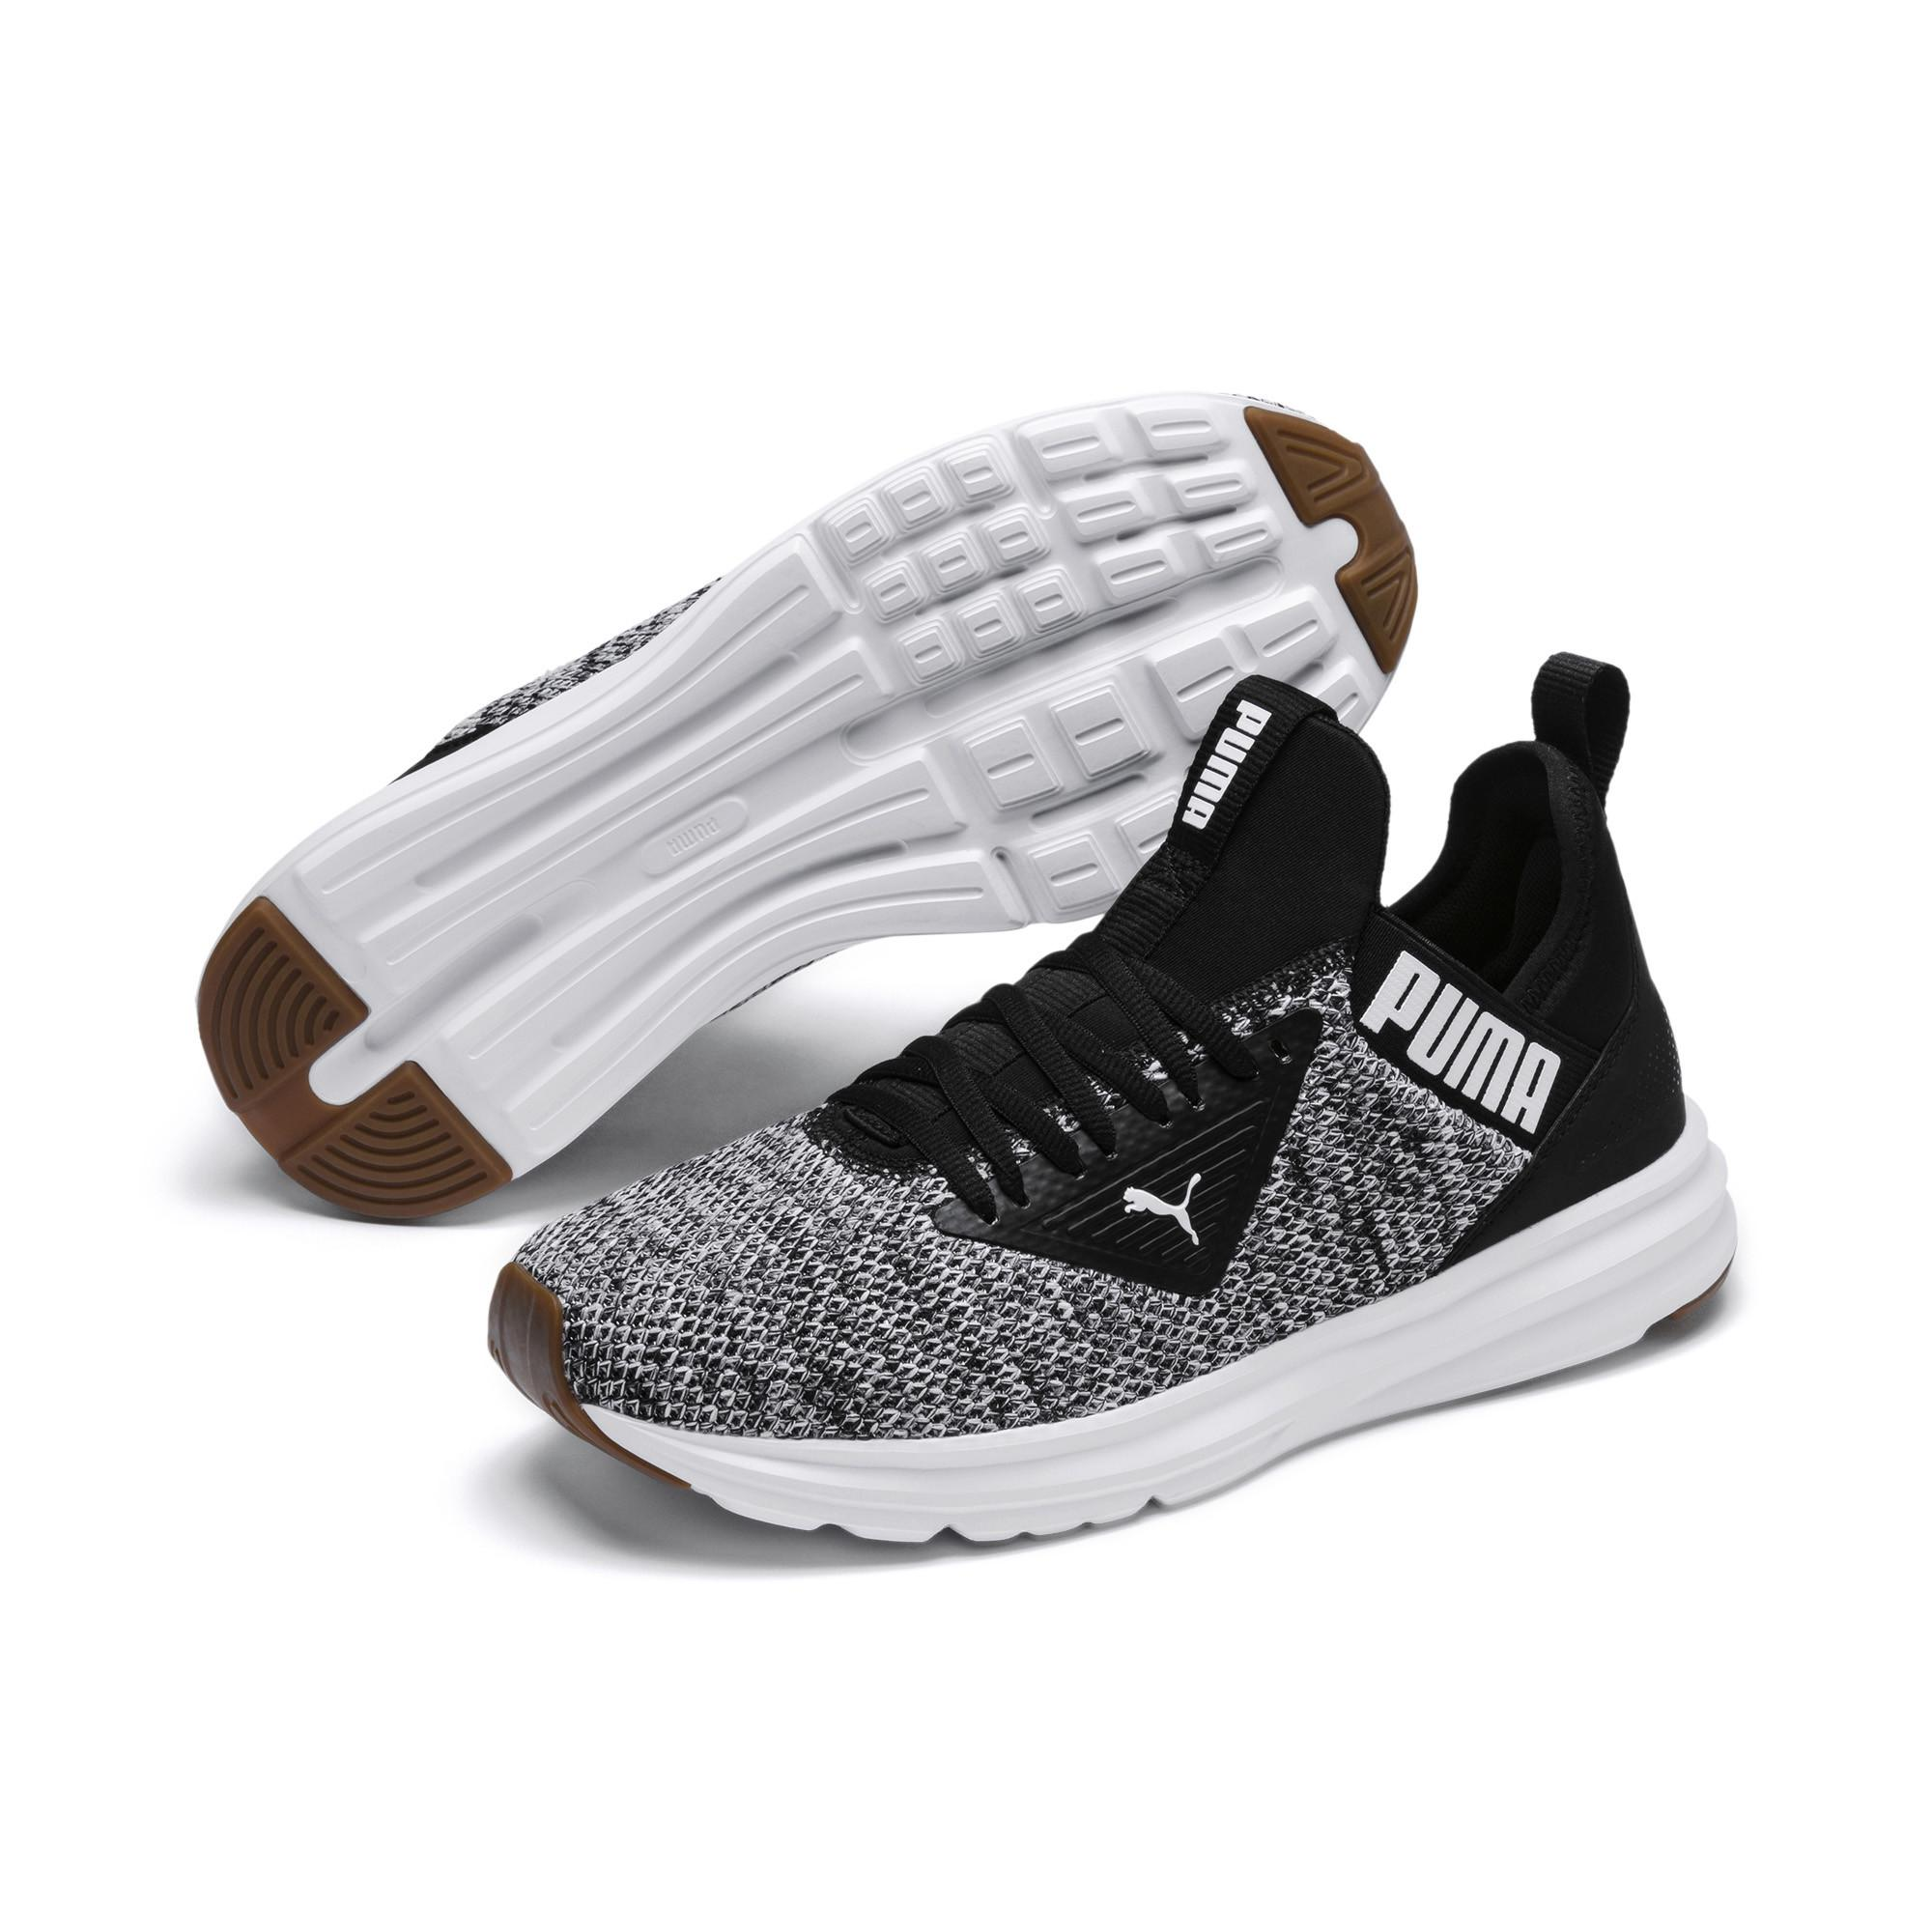 a2901118abc Lyst - PUMA Enzo Beta Woven Men s Training Shoes in Black for Men